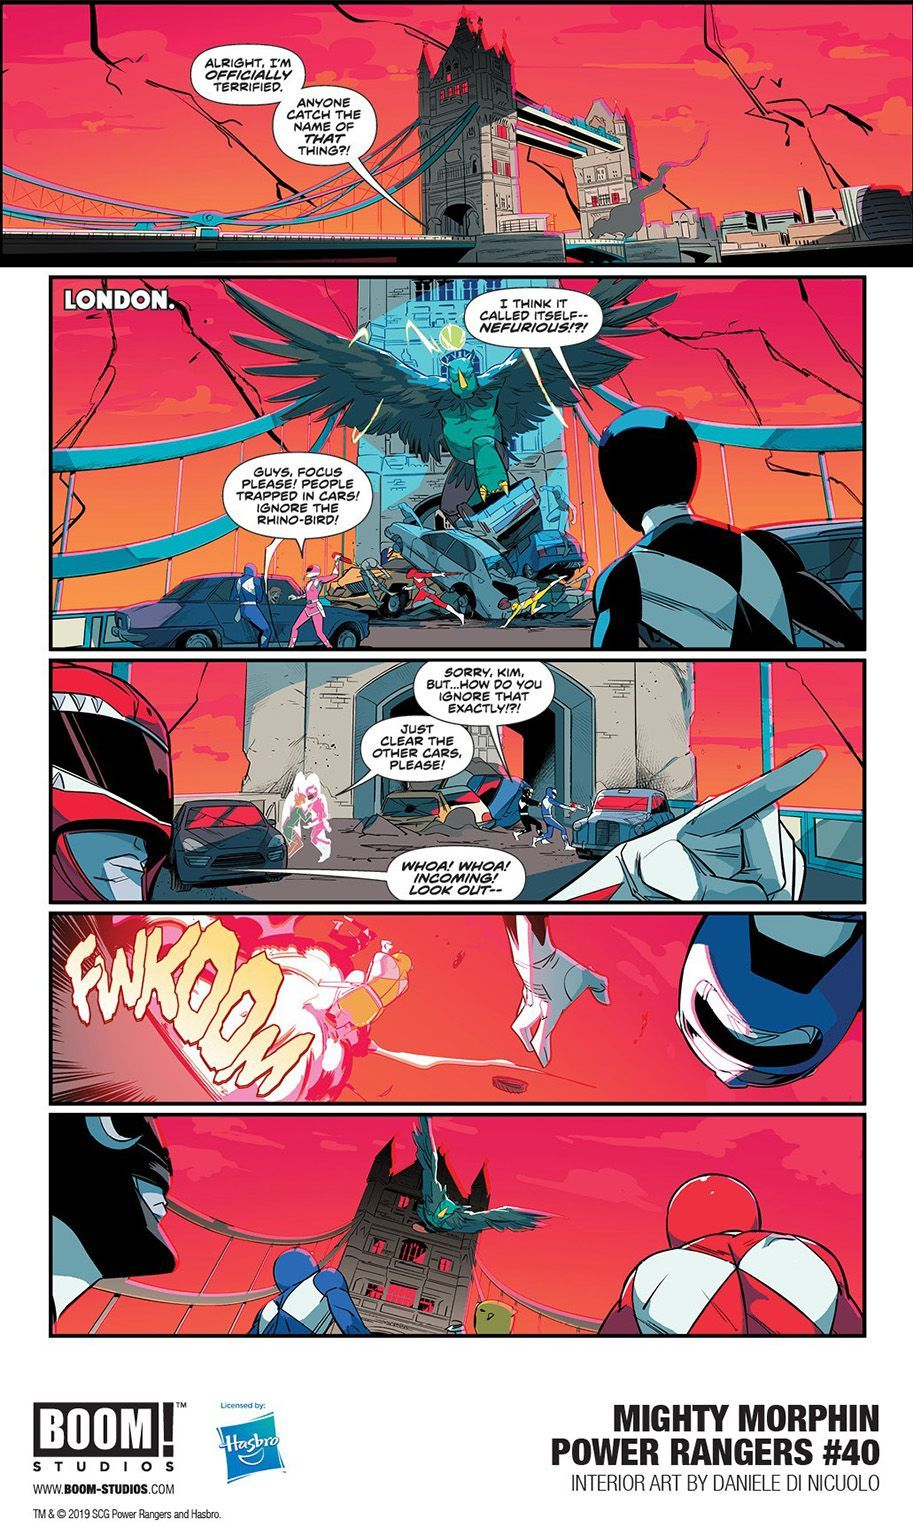 Mighty-Morphin-Power-Rangers-40-Preview-Interior-1